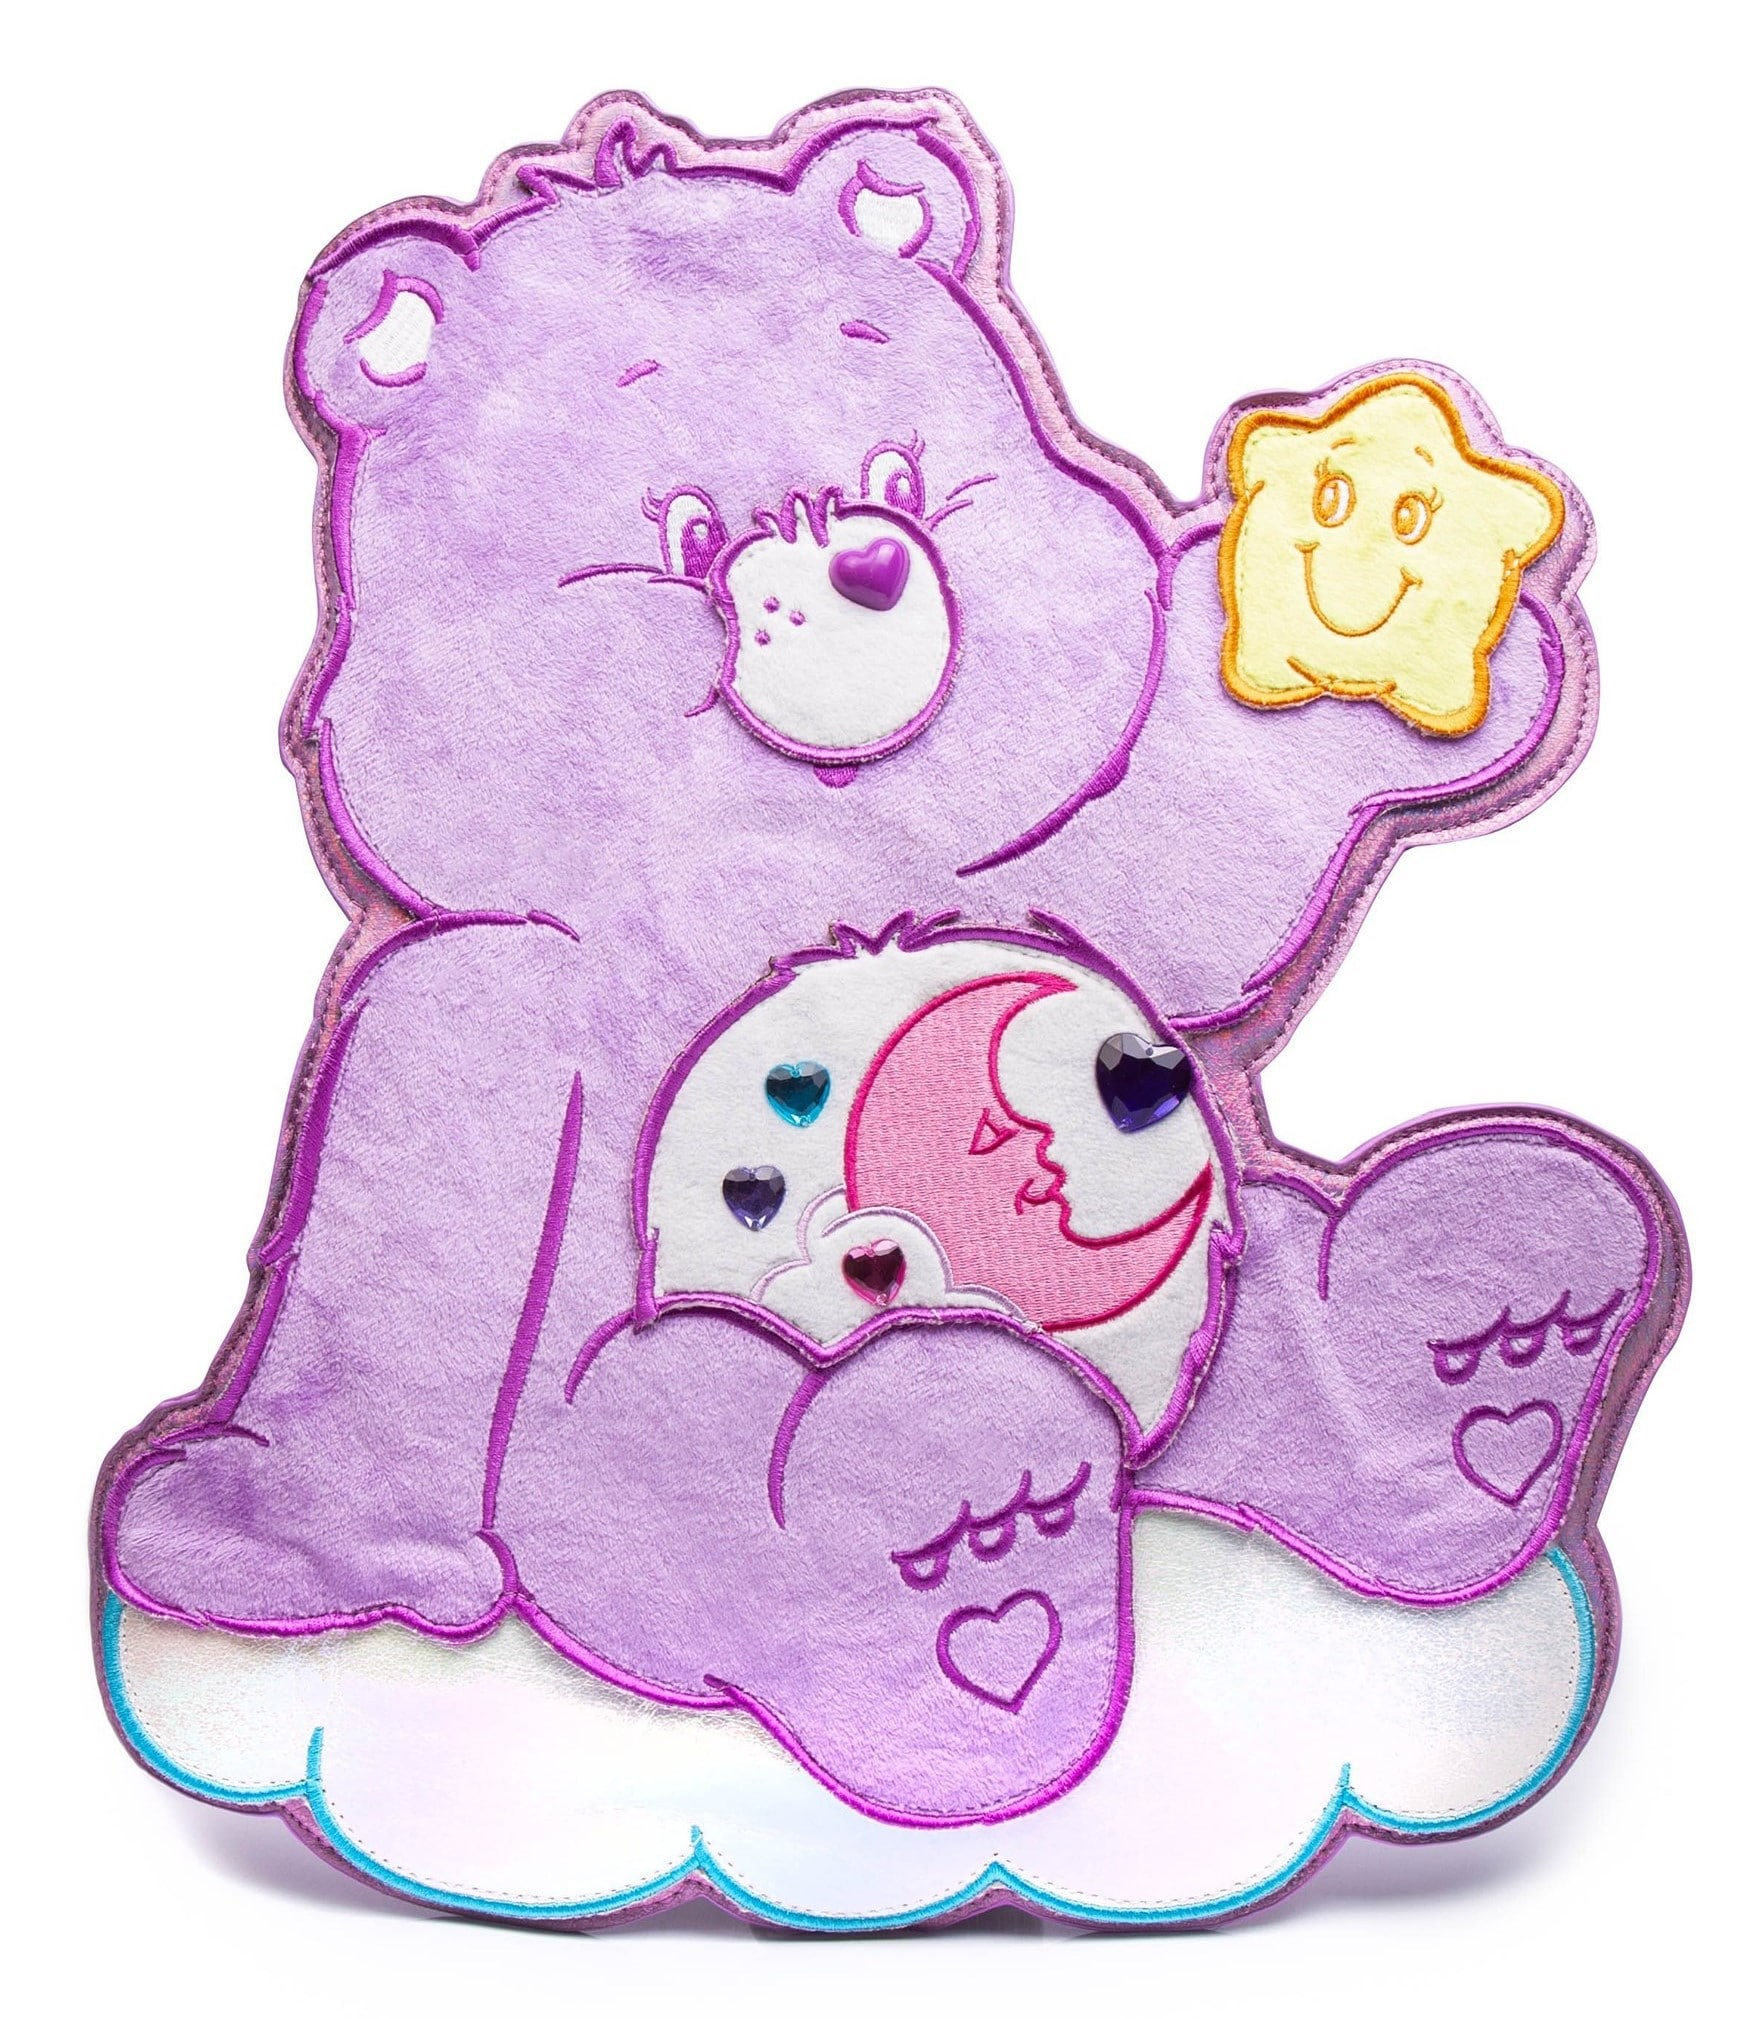 Irregular Choice Care Bears collection includes outrageous furry shoes 20